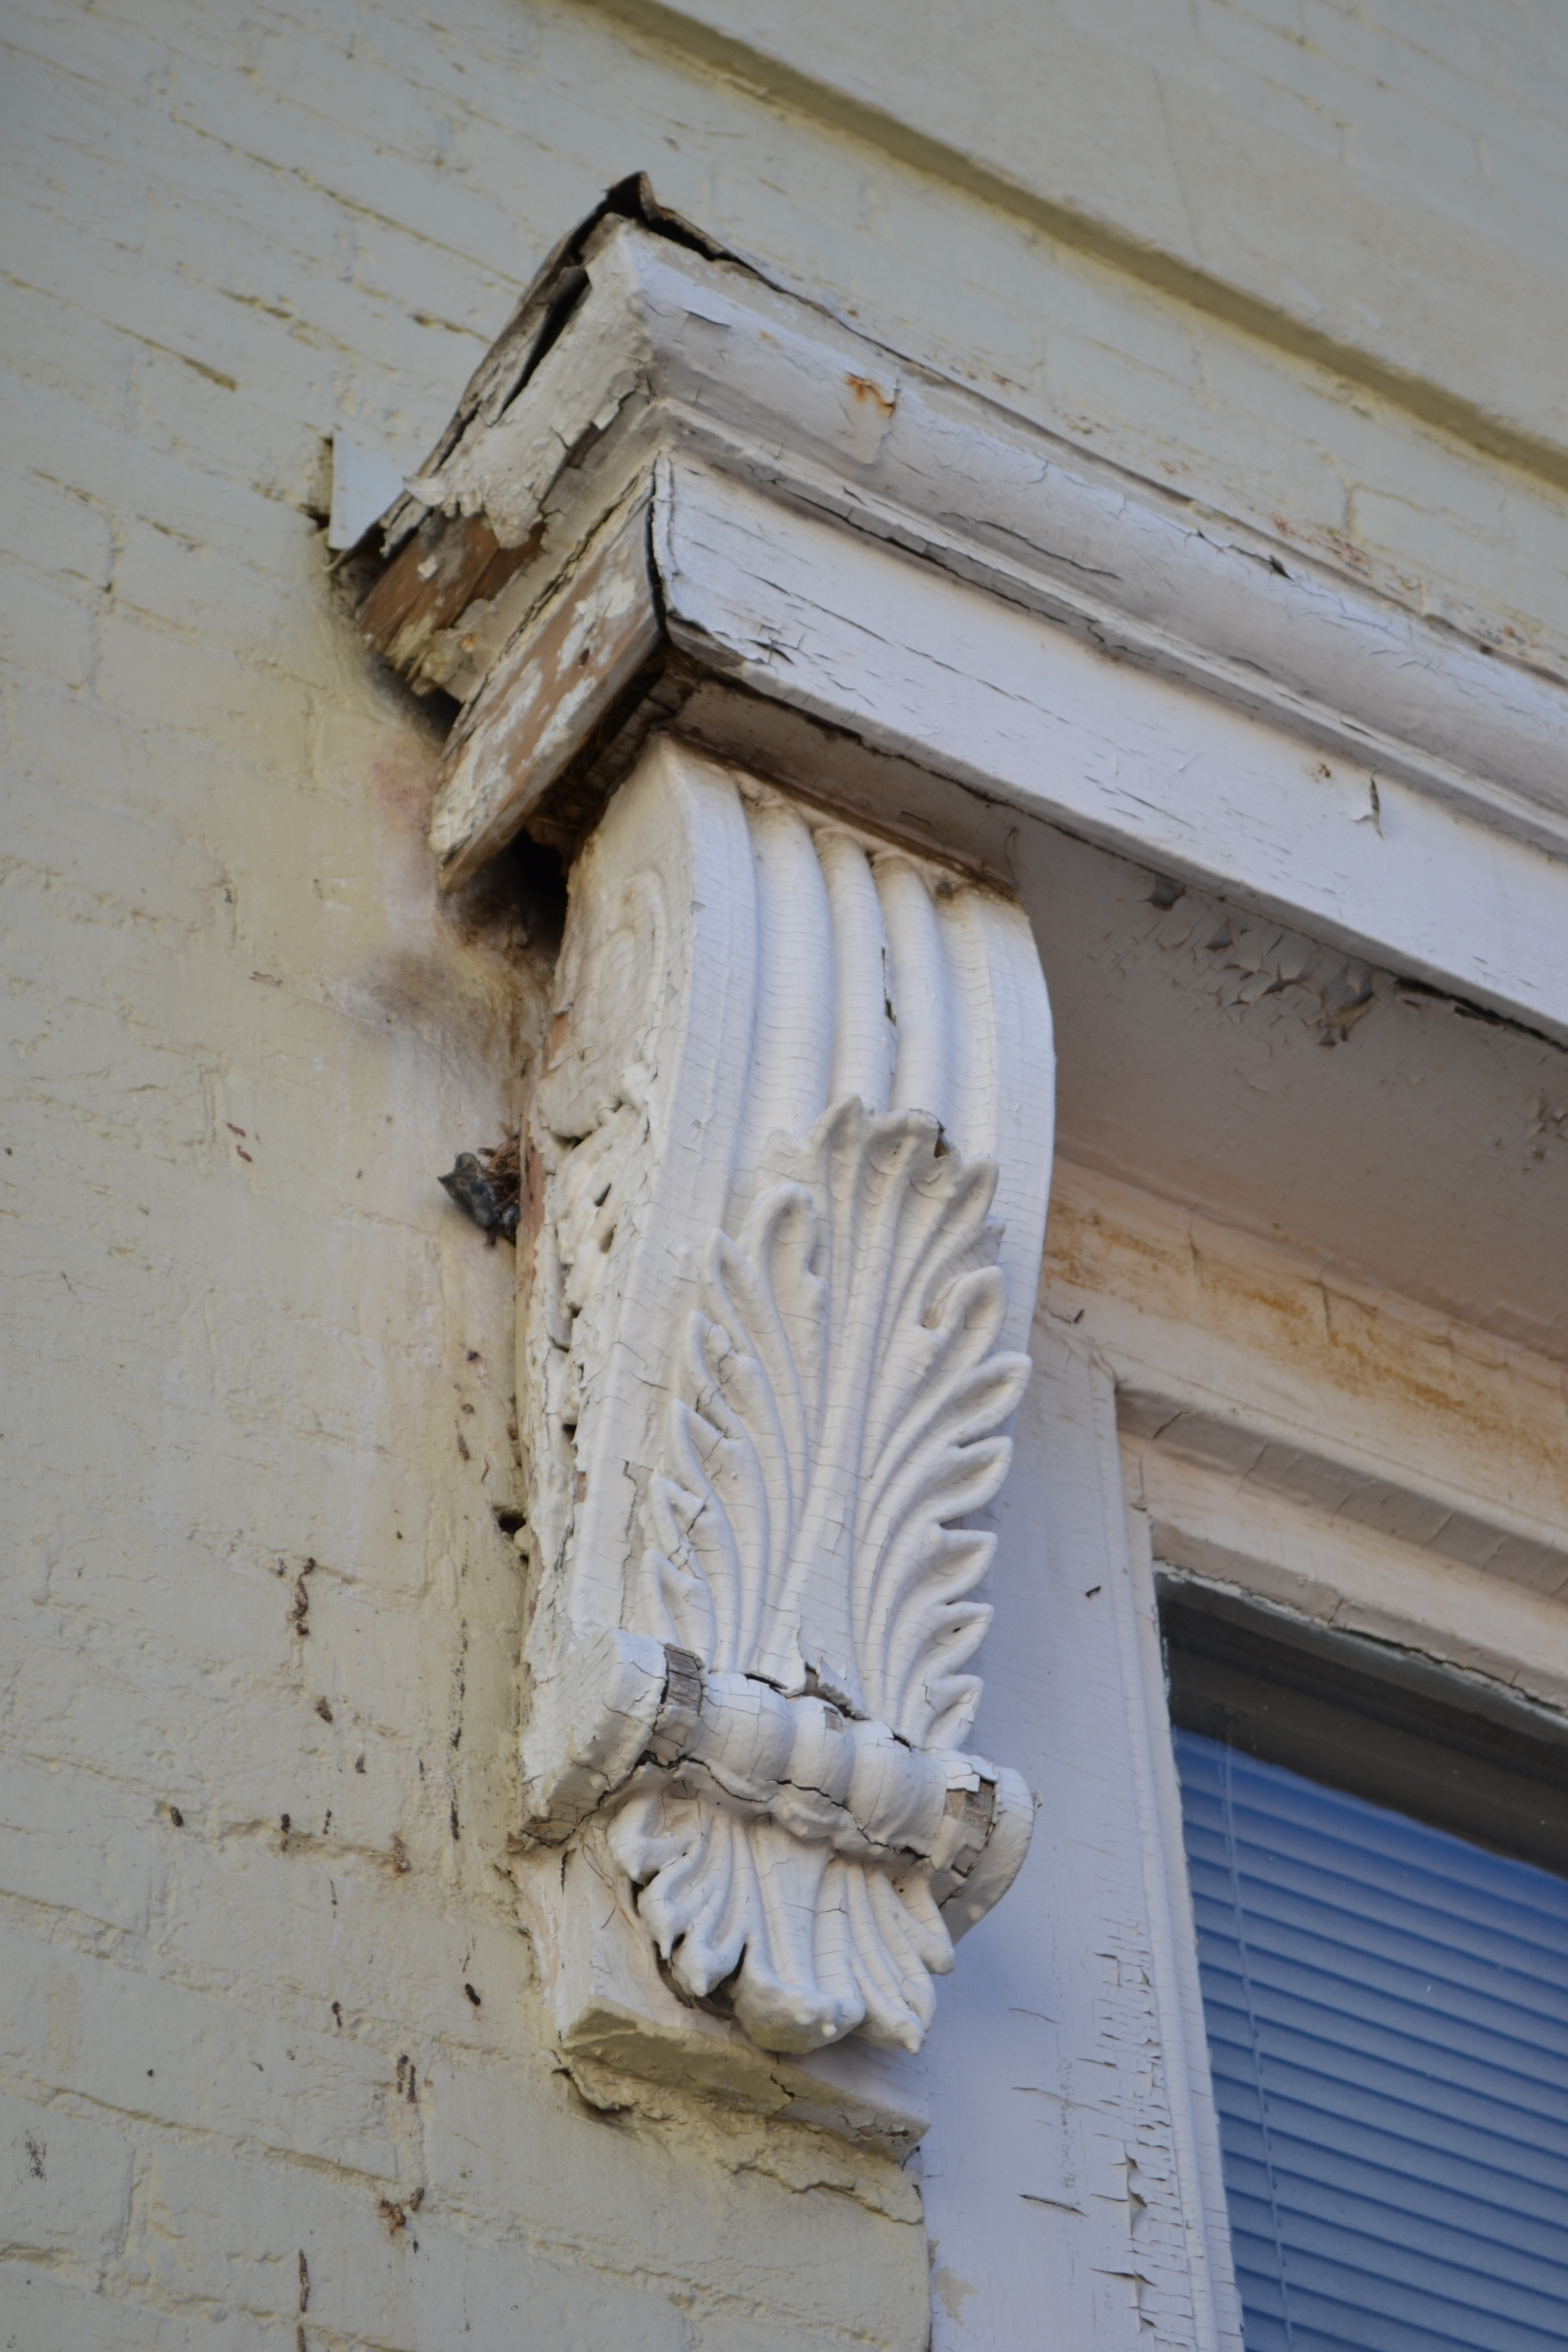 Typical condition of architectural ornamentation.